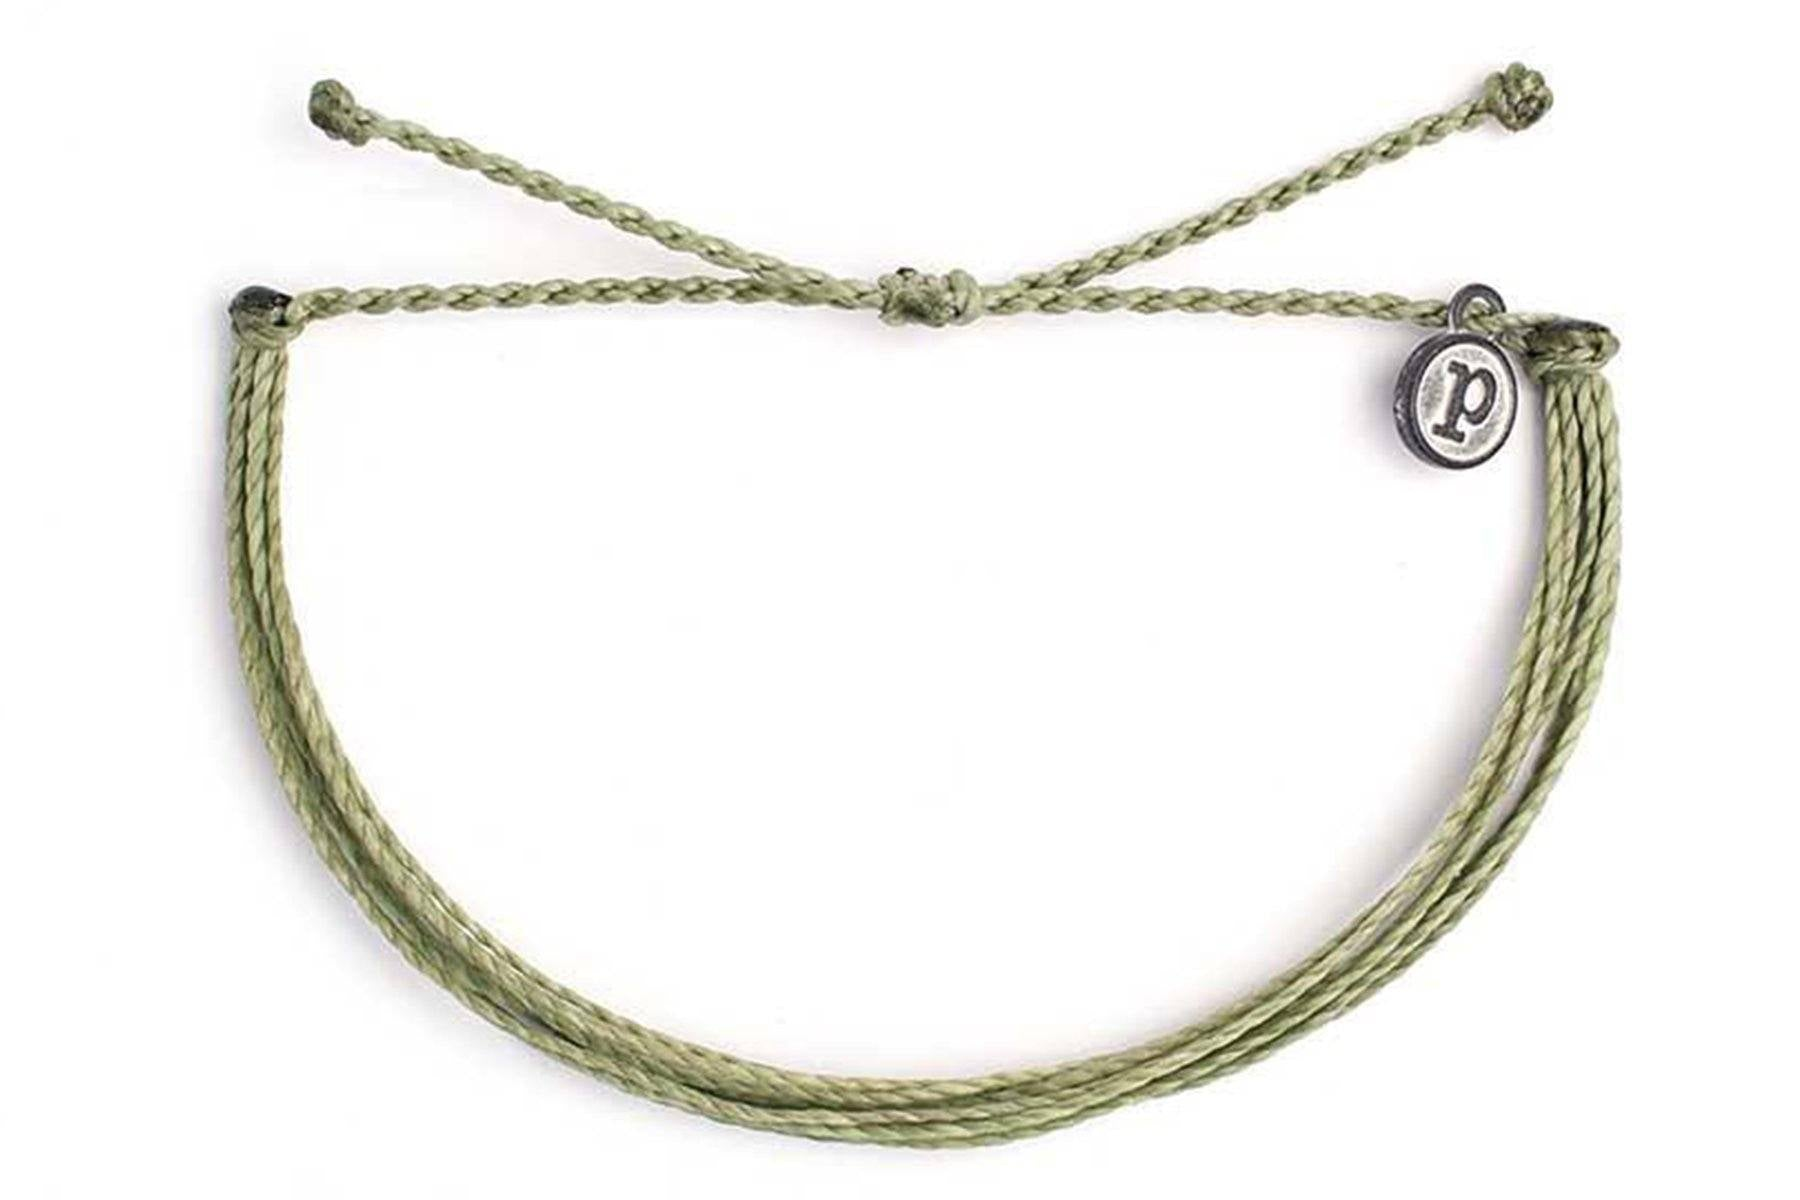 Solid Color Bracelet by Pura Vida